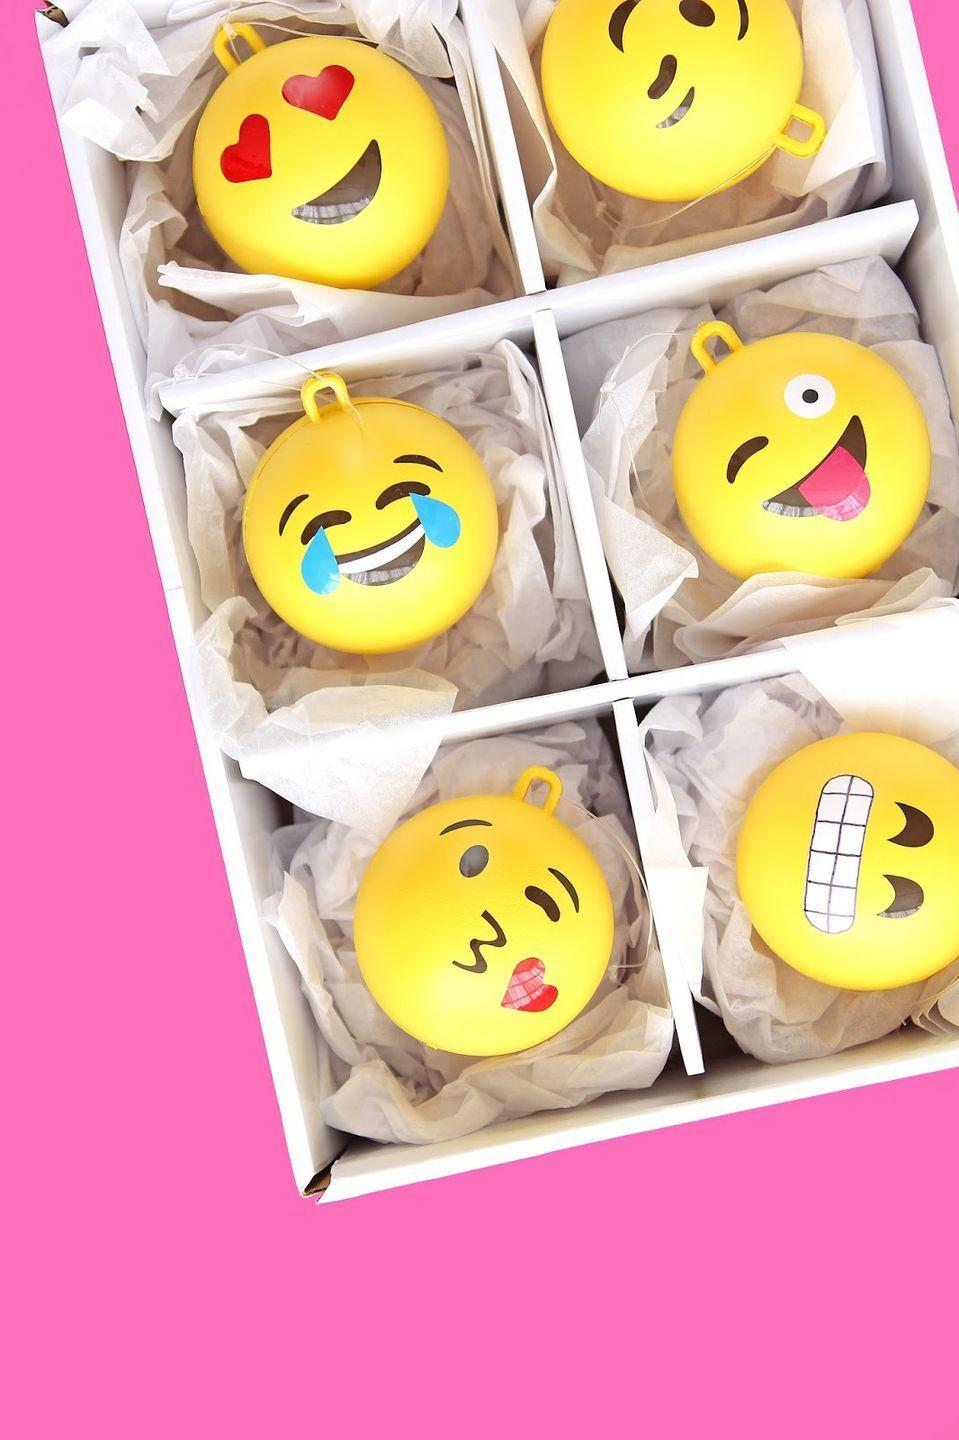 """<p>Infuse your tree with a hefty dose of personality by crafting bright yellow emoji-themed ornaments. </p><p><em>Get the tutorial at <a href=""""http://www.awwsam.com/2015/12/diy-emoji-ball-ornaments.html"""" rel=""""nofollow noopener"""" target=""""_blank"""" data-ylk=""""slk:Aww Sam"""" class=""""link rapid-noclick-resp"""">Aww Sam</a>.</em></p>"""